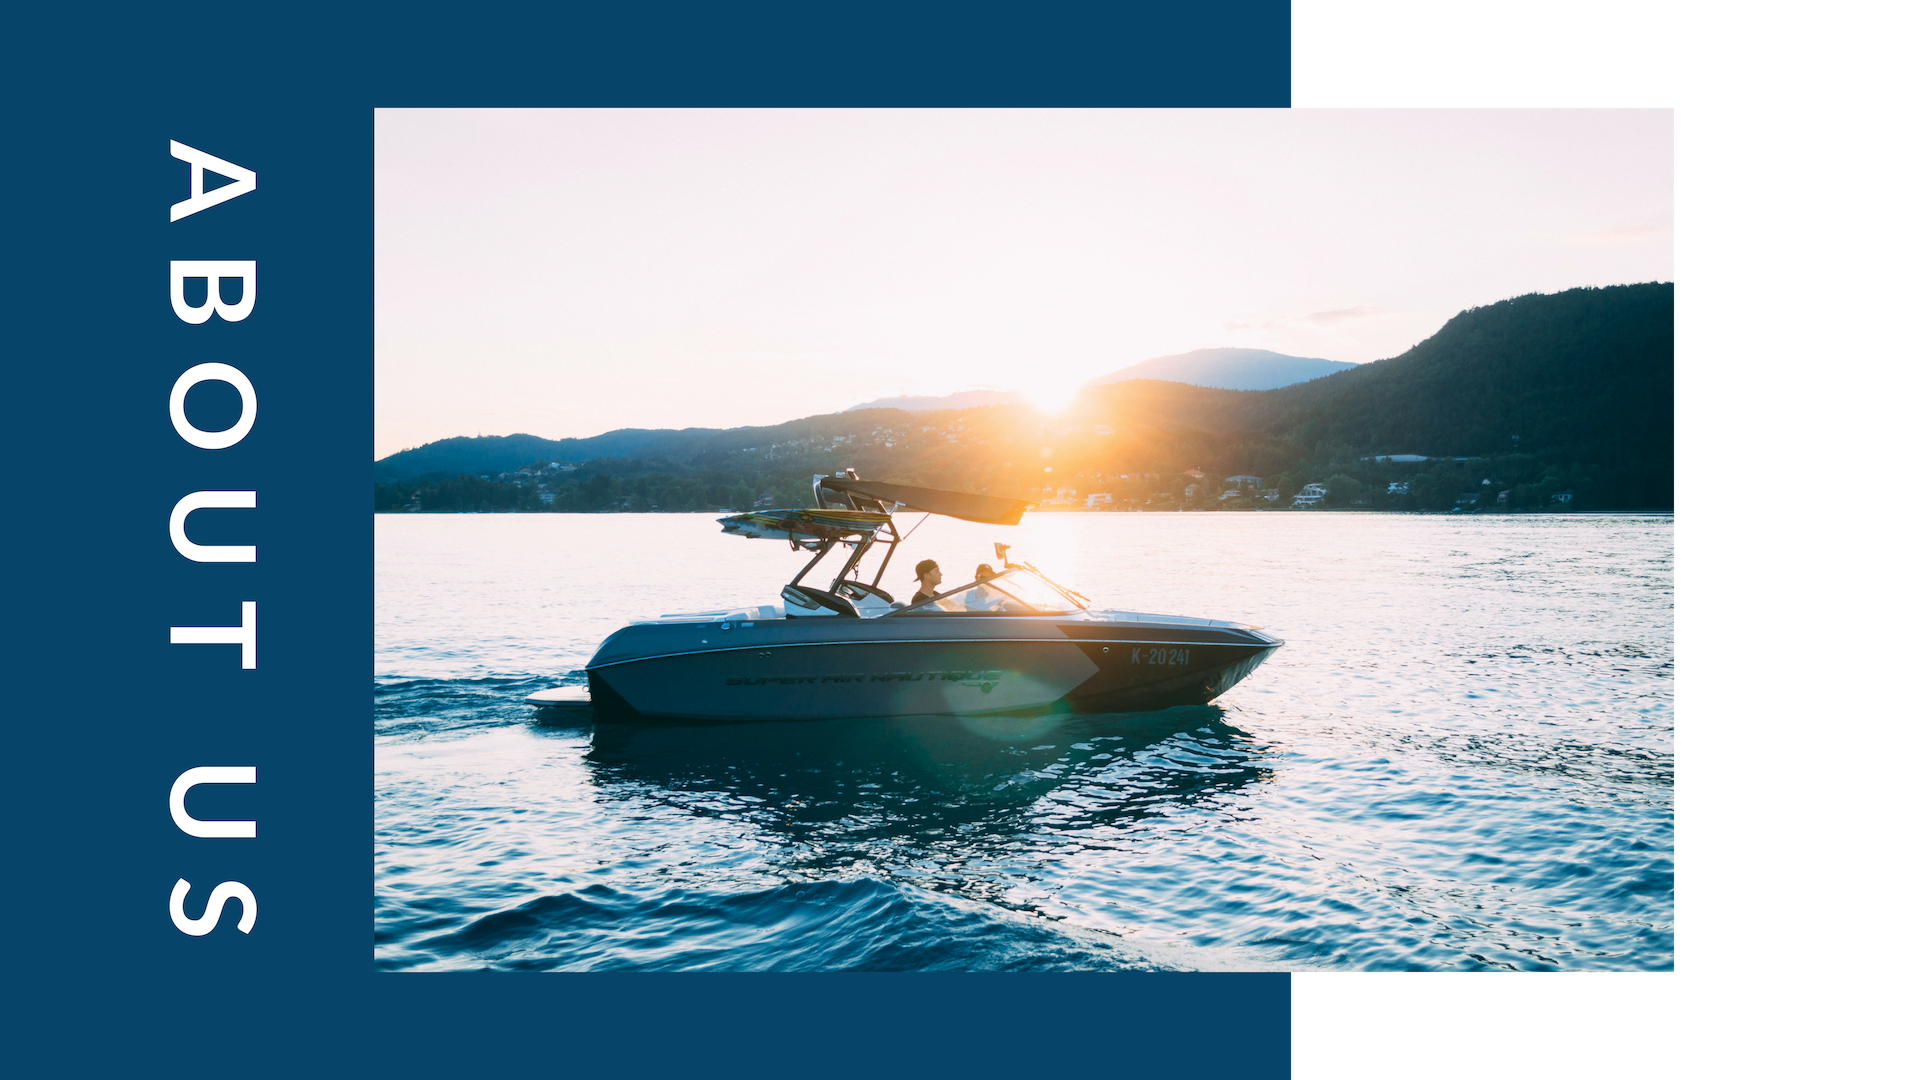 Why Choose Us? - You can find mechanics throughout the community, so what makes us the ideal choice for boats, jet skis, and more? Our experienced repair staff provides more services at lower pricing, keeping more vehicle owners ready for fun all year long.From older ships that require more maintenance and repairs to routine engine tune-ups and safety inspections, we handle them all. No one else provides as many options or our level of quality, making us your trusted name in local shops.On how many occasions have you found an amateur online, only to see them make a situation worse than before? Instead, we remain your experienced and skilled provider of complete marine vehicle repairs, keeping your machines operating better every day.You no longer need to hope for the best when you bring your boat in for a routine battery test. Give your vehicles the reliable source for more forms of repairs whenever you need to save on maintenance with us.